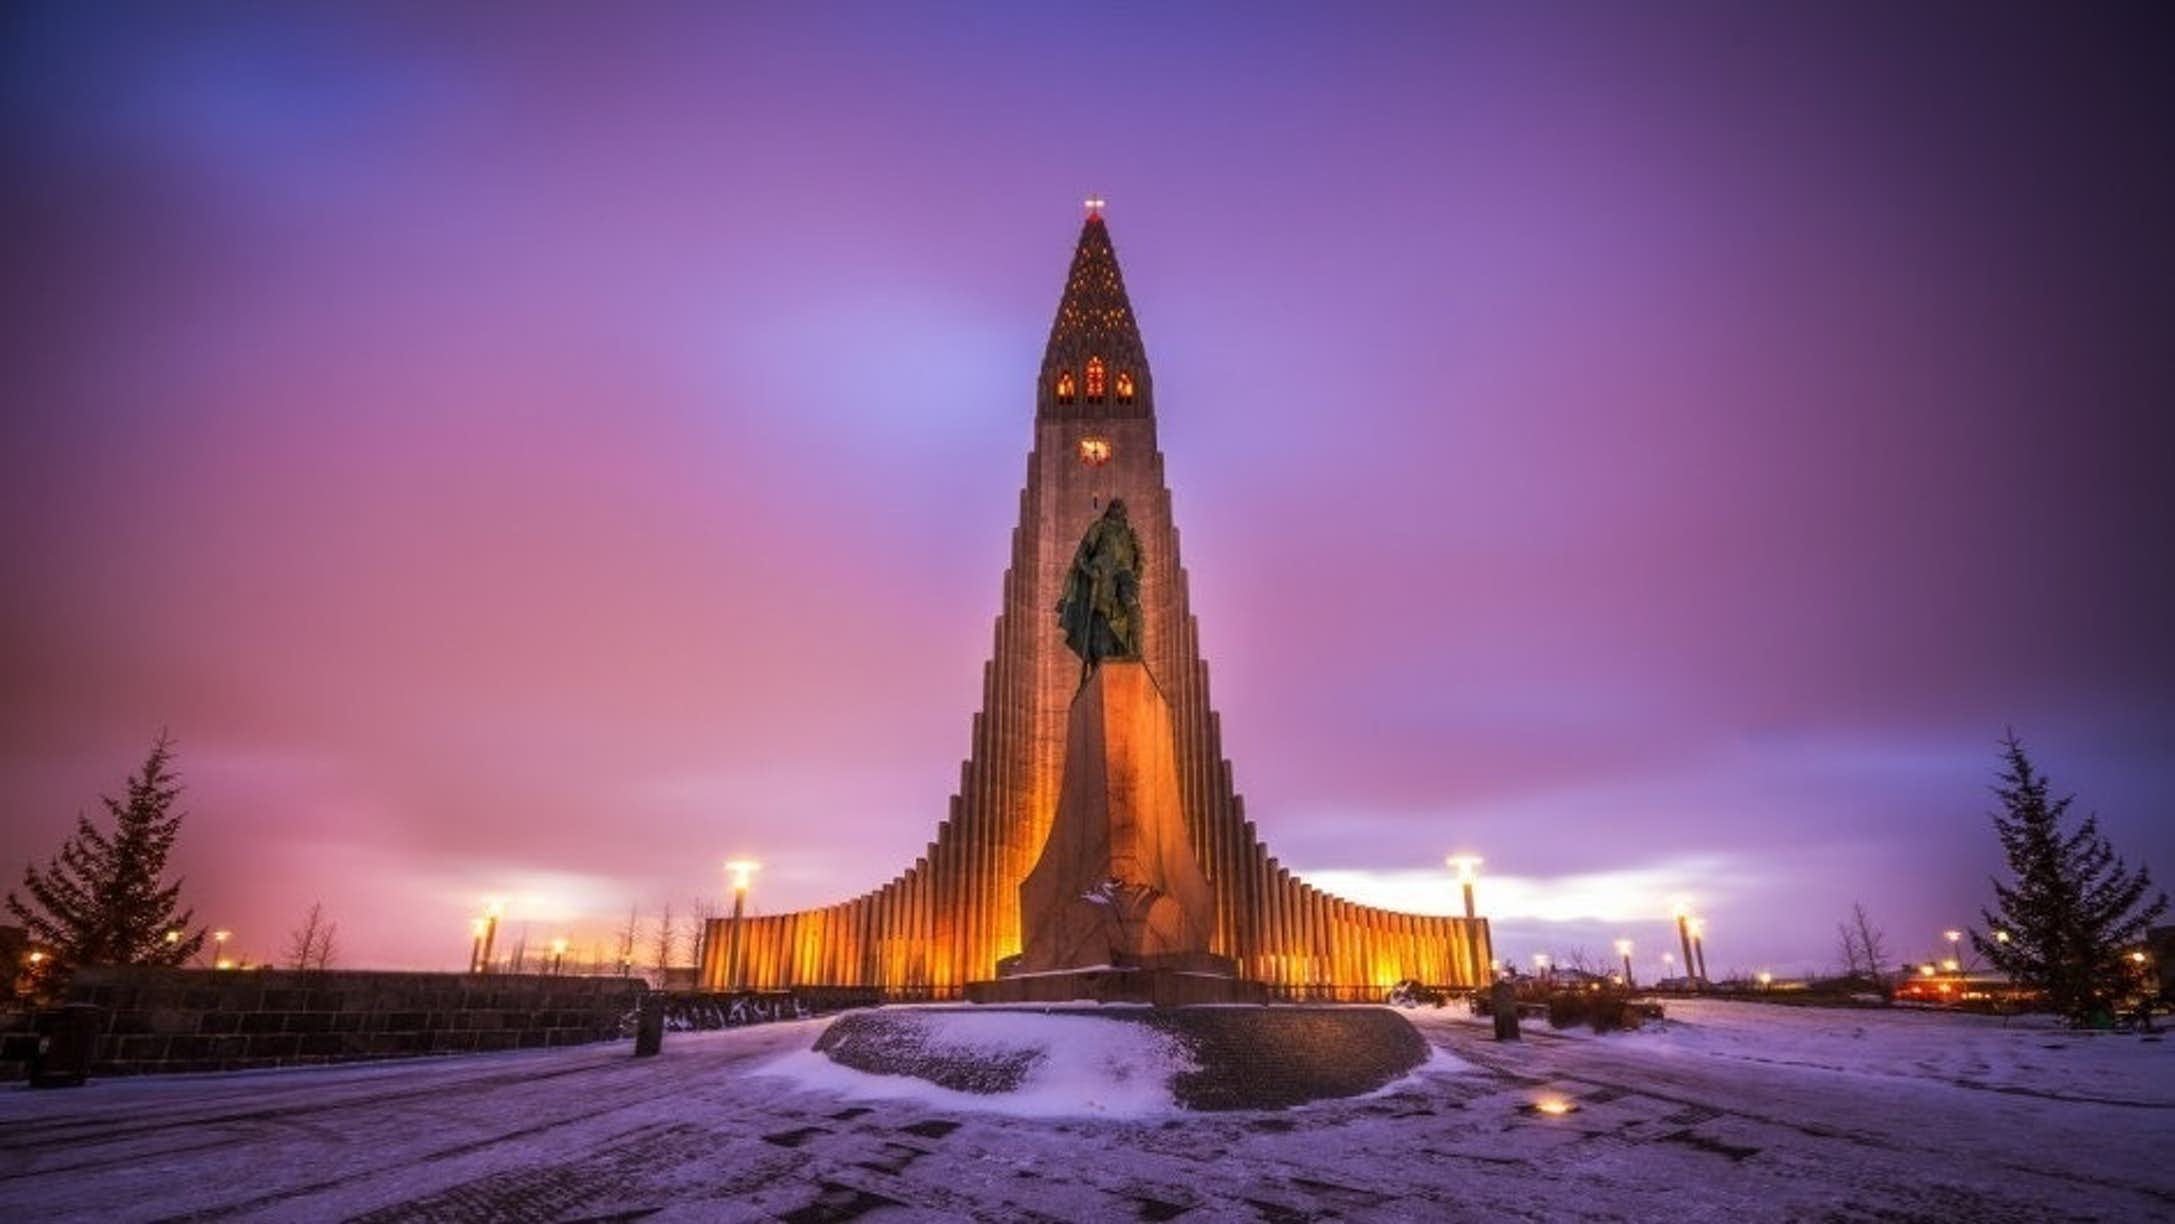 http://www.whenwegetthere.com/tourist_attraction_images/travel_destinations/europe/iceland/iceland.jpg